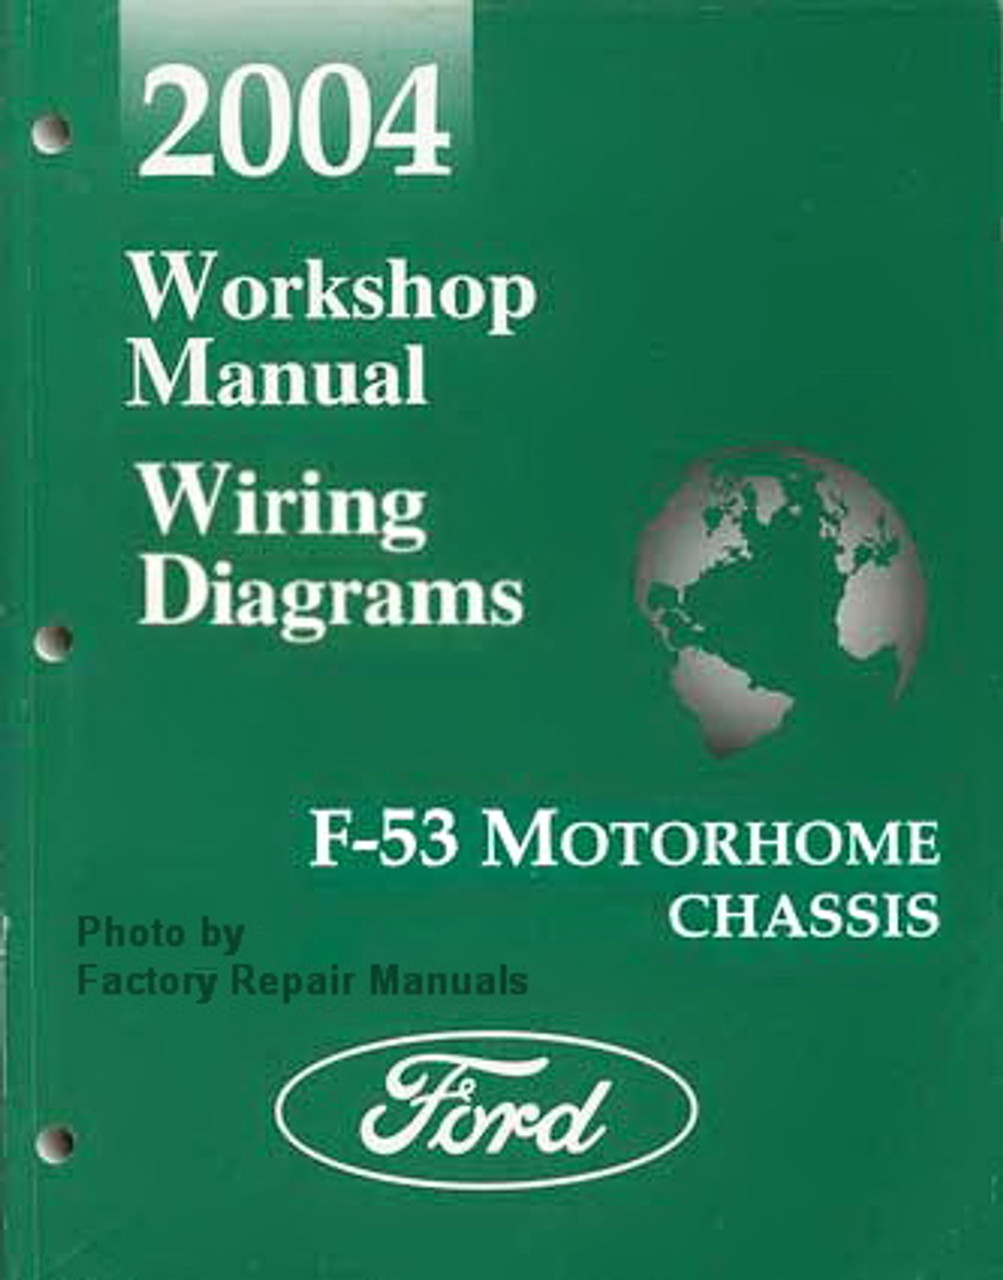 2004 Ford F53 Motorhome Chassis Factory Shop Service Manual  U0026 Wiring Diagrams